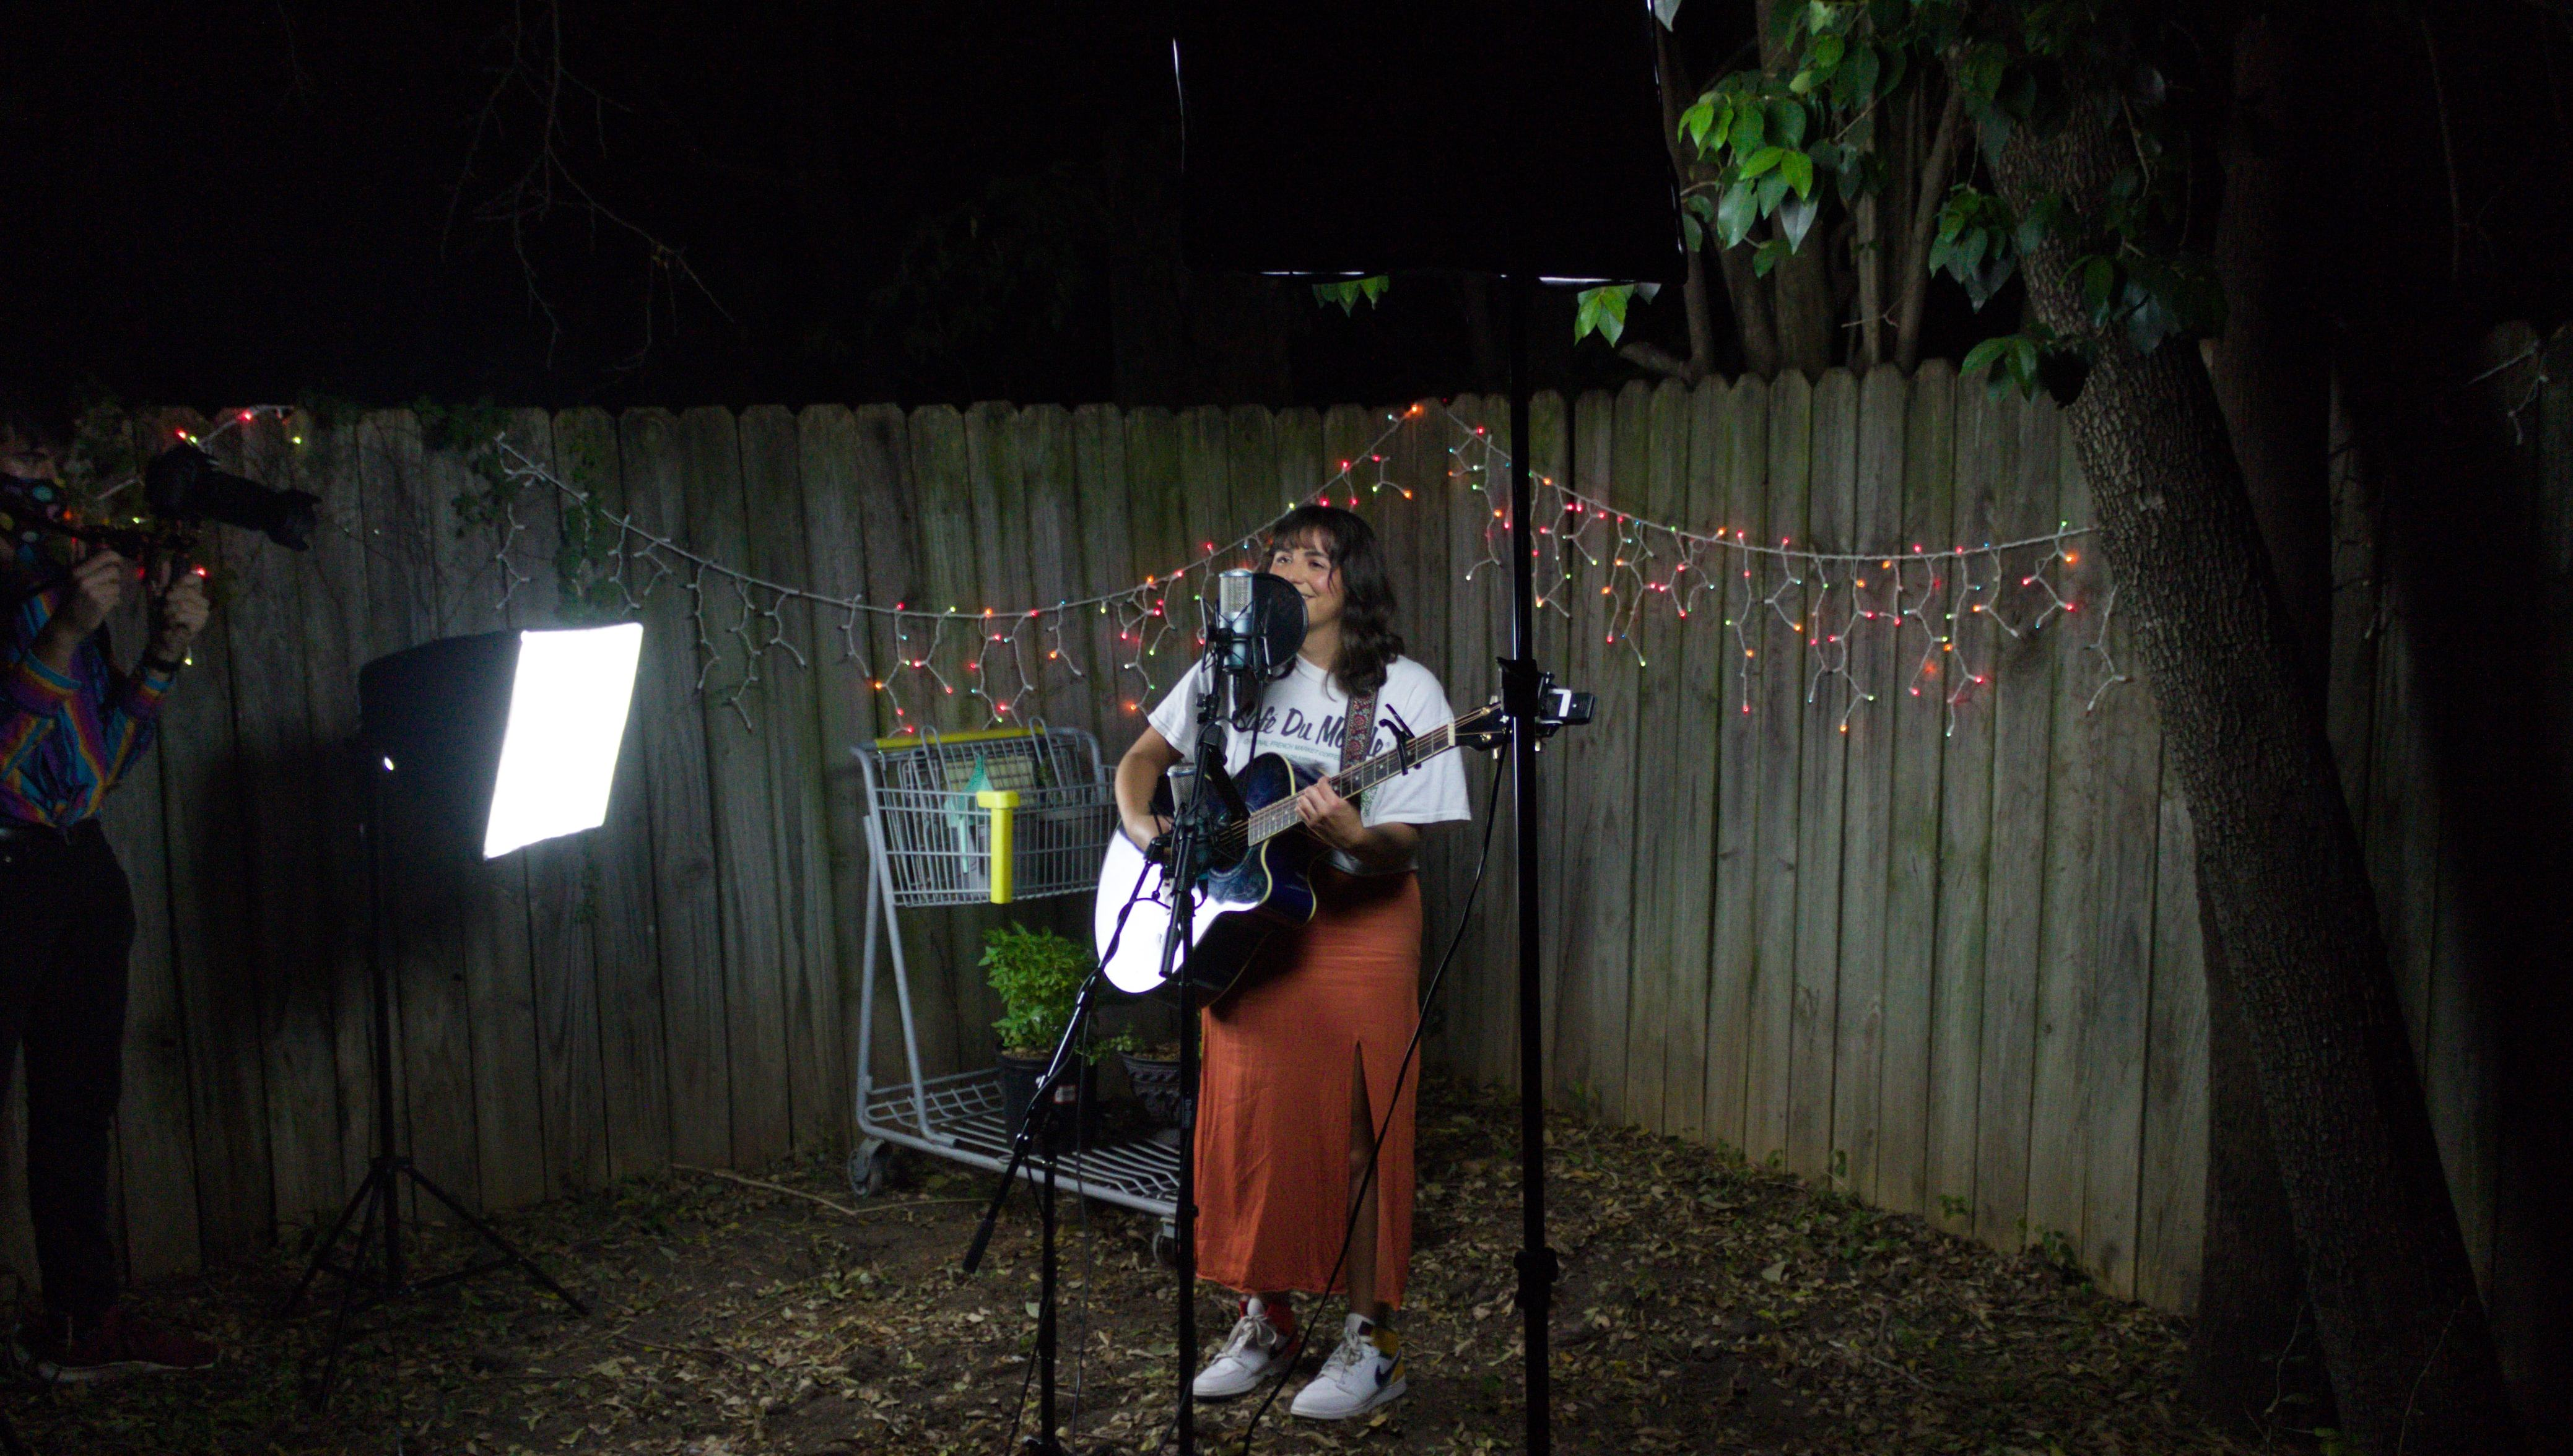 Behind the Scenes photo of Lainey Gonzales' Unplugged Episode by Erin Eubanks